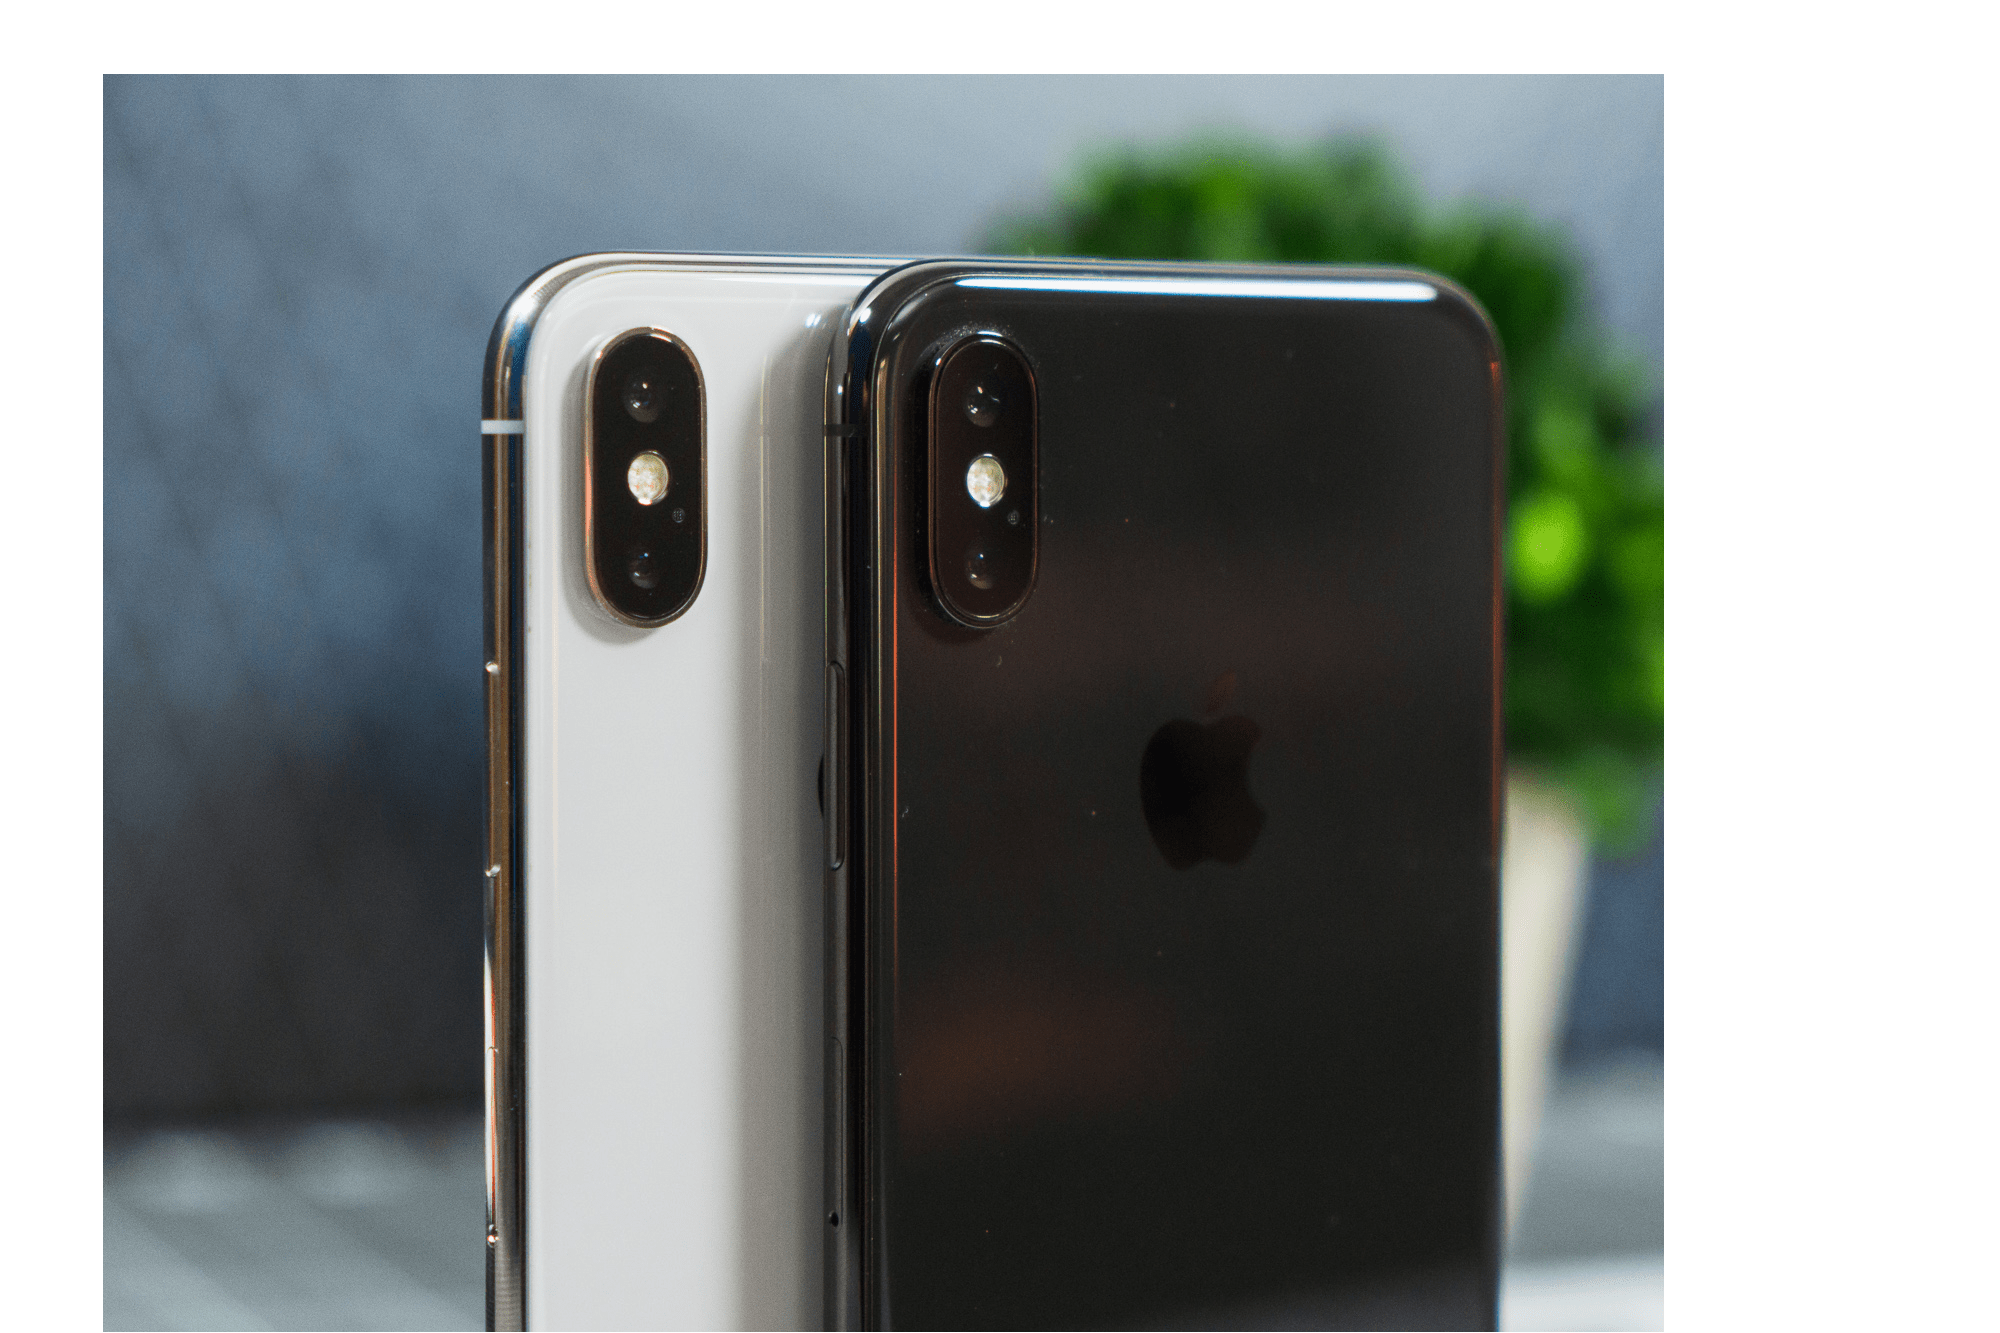 2019 iPhones To Debut Laser 3D Camera, AR Focus